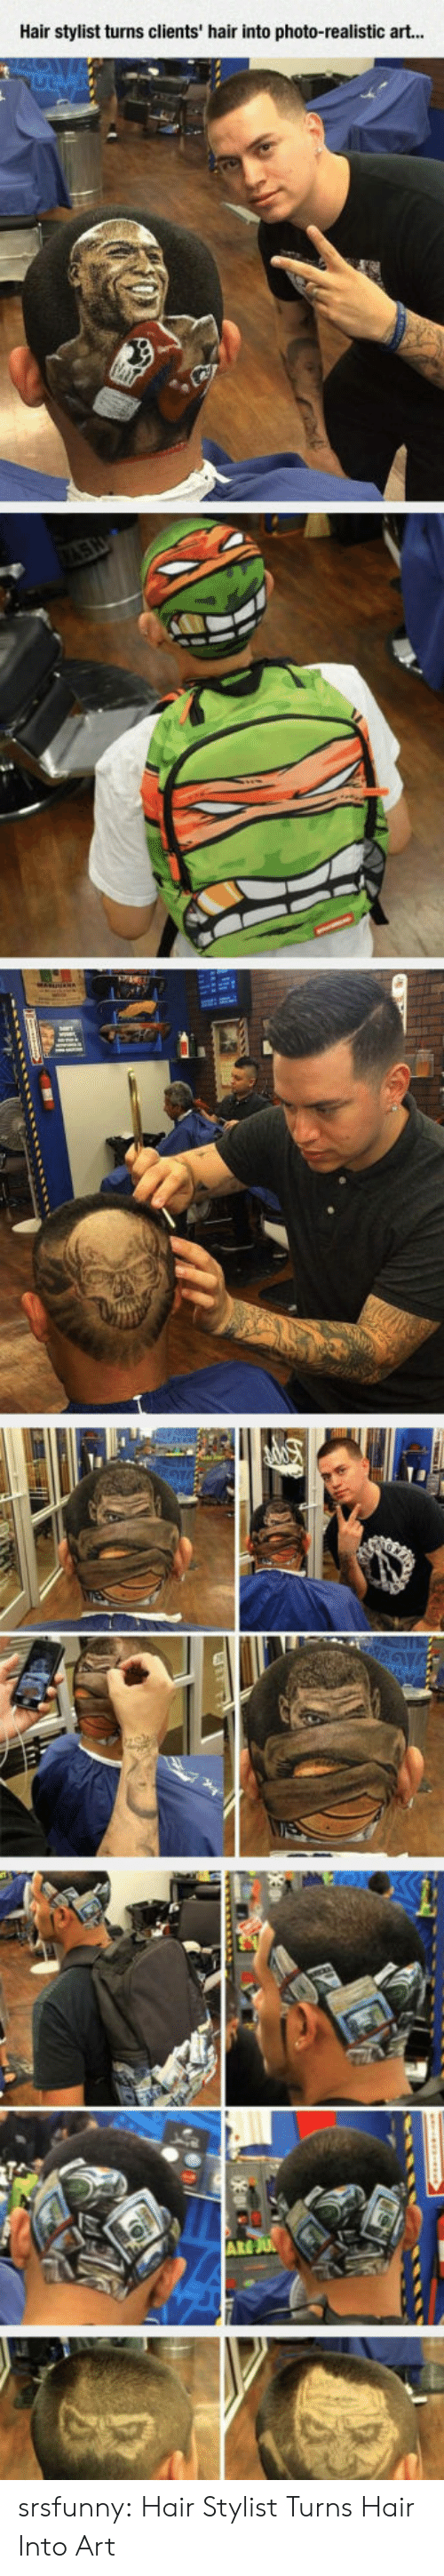 Tumblr, Blog, and Hair: Hair stylist turns clients' hair into photo-realistic art...  ARE srsfunny:  Hair Stylist Turns Hair Into Art